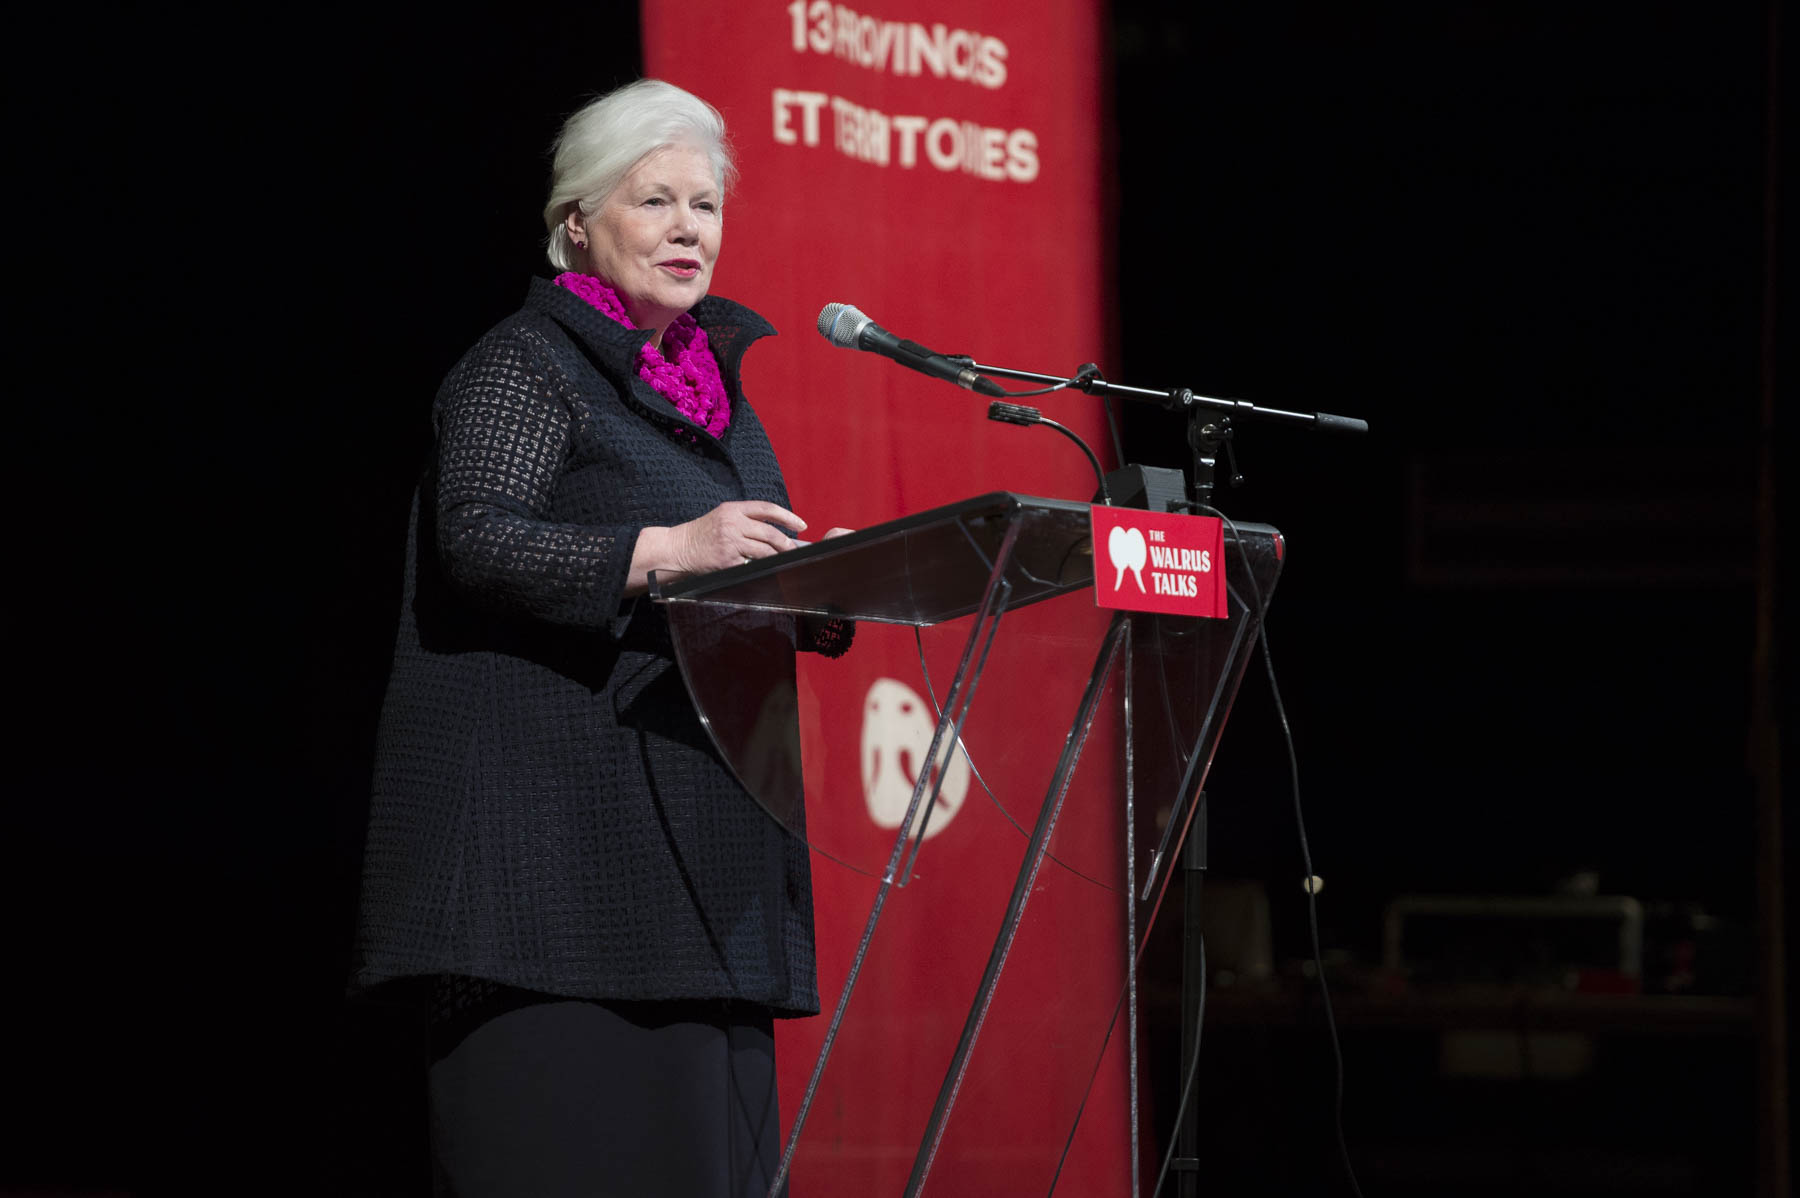 Her Honour the Honourable Elizabeth Dowdeswell, Lieutenant Governor of Ontario, offered welcoming remarks.